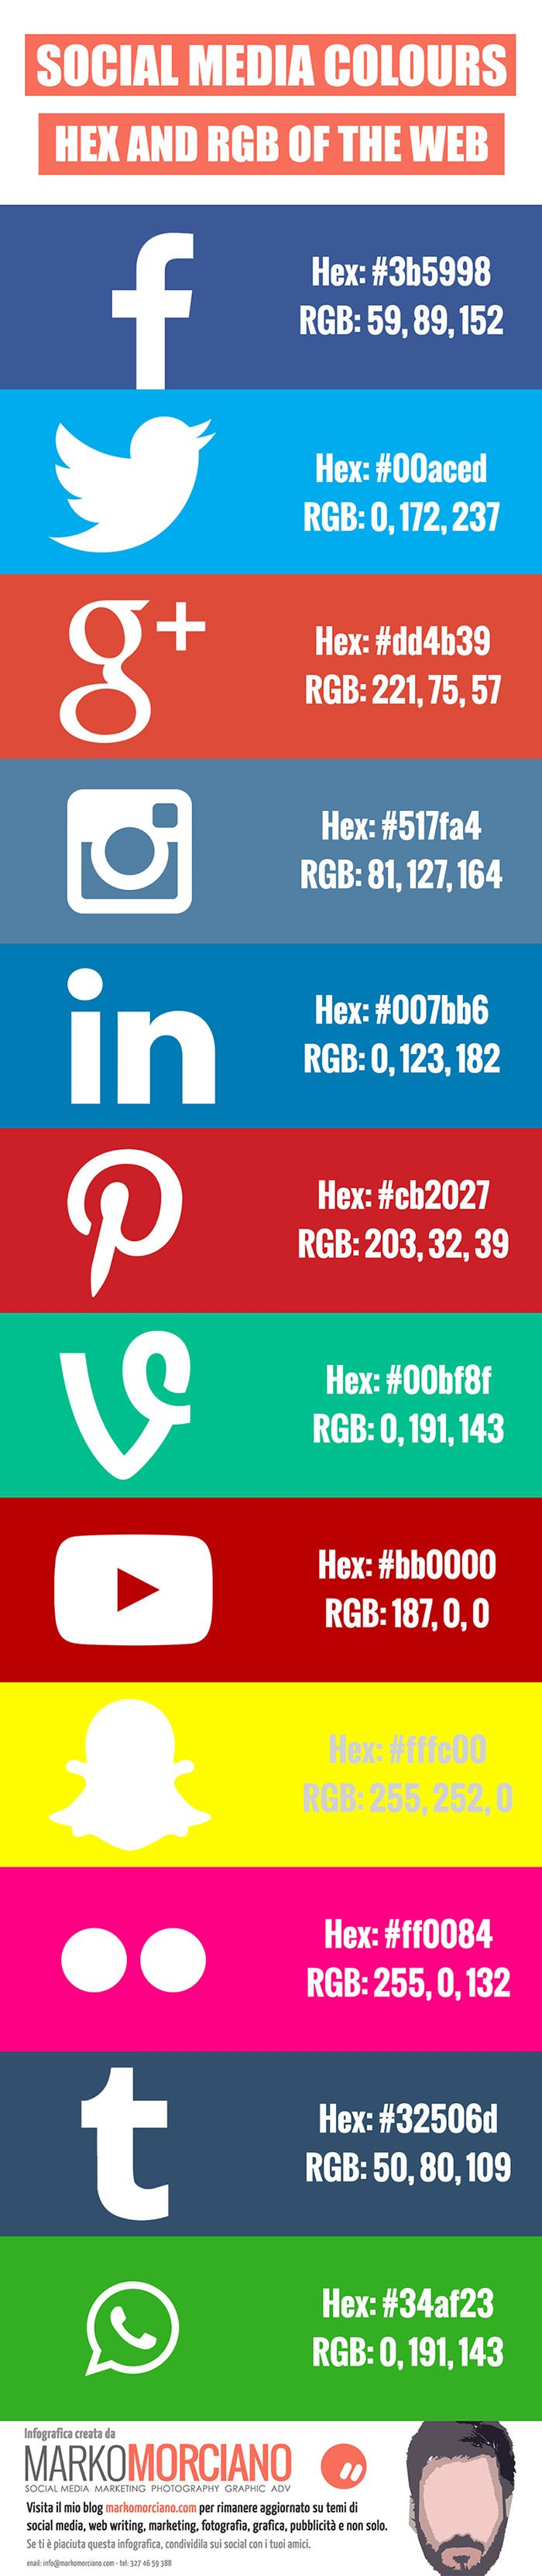 social-media-colours-infographic